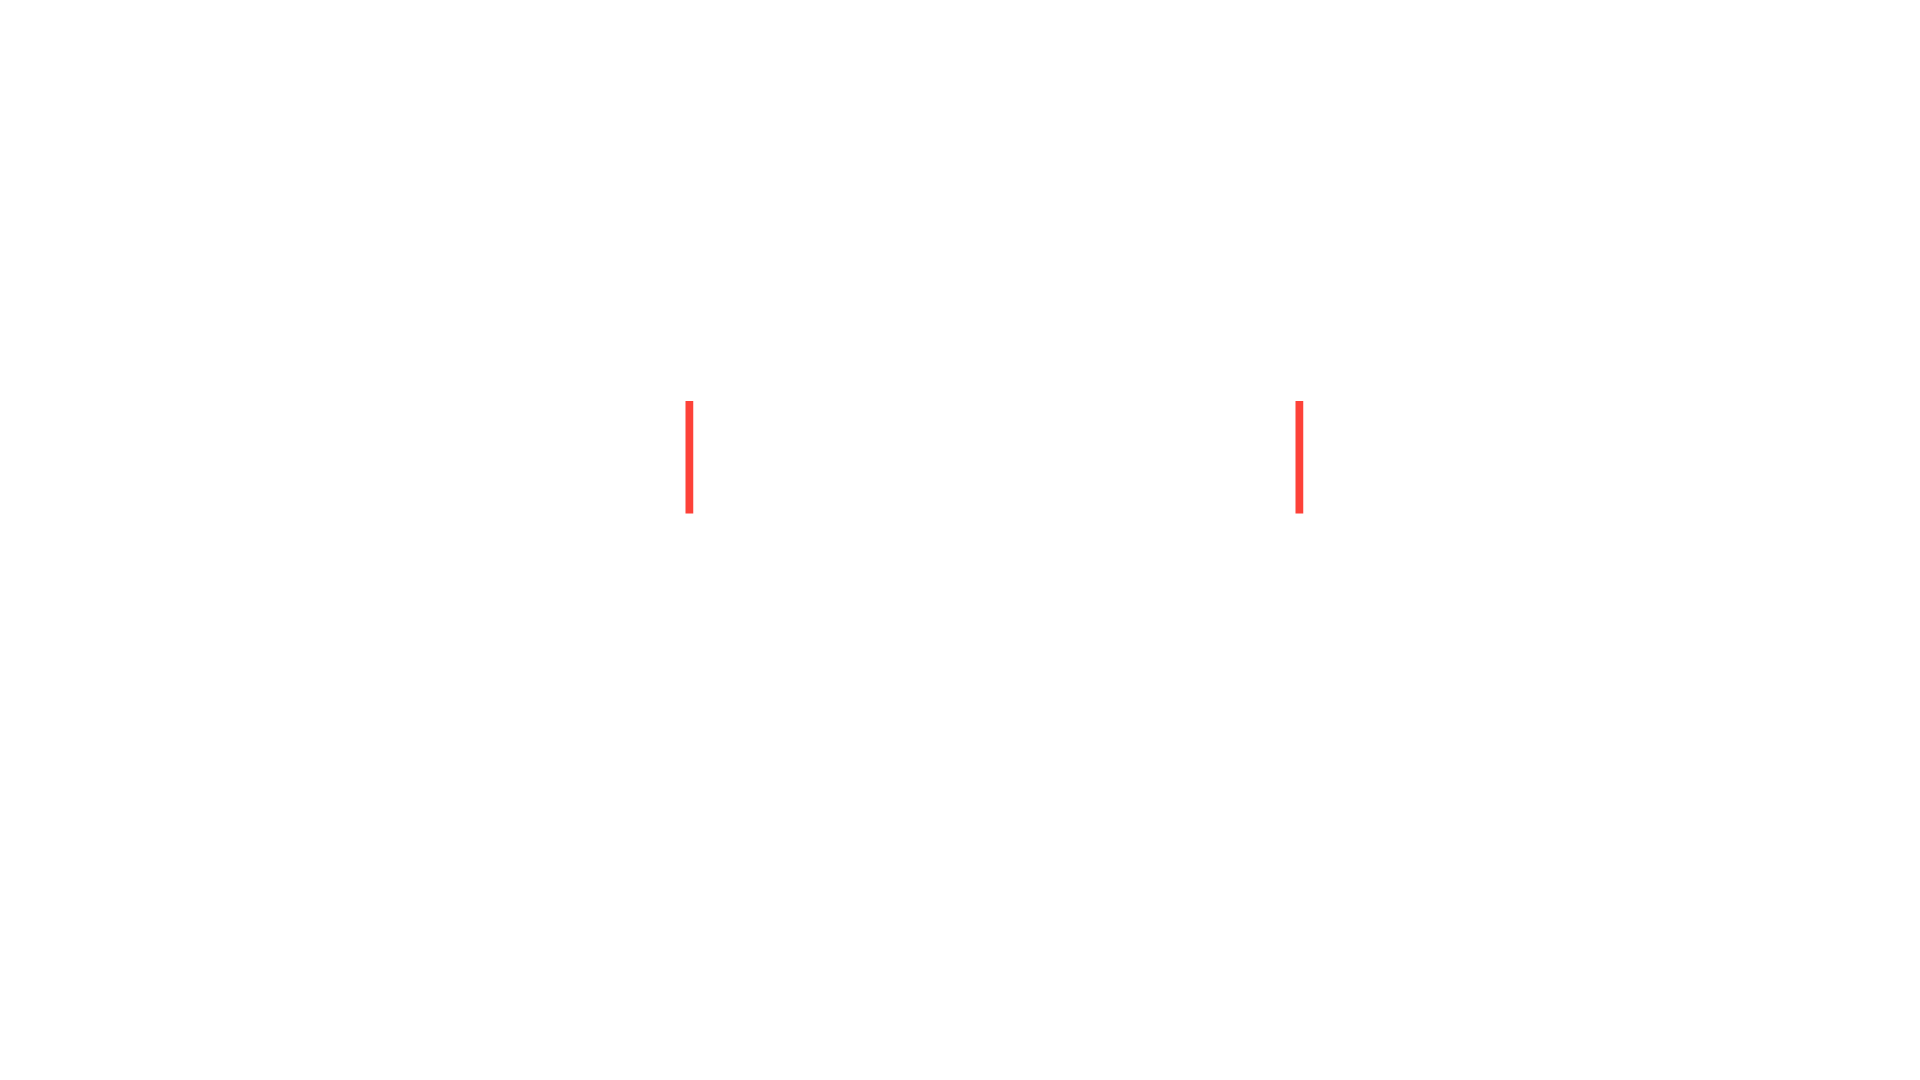 Create, Engage, Share | Crafting Great Stories